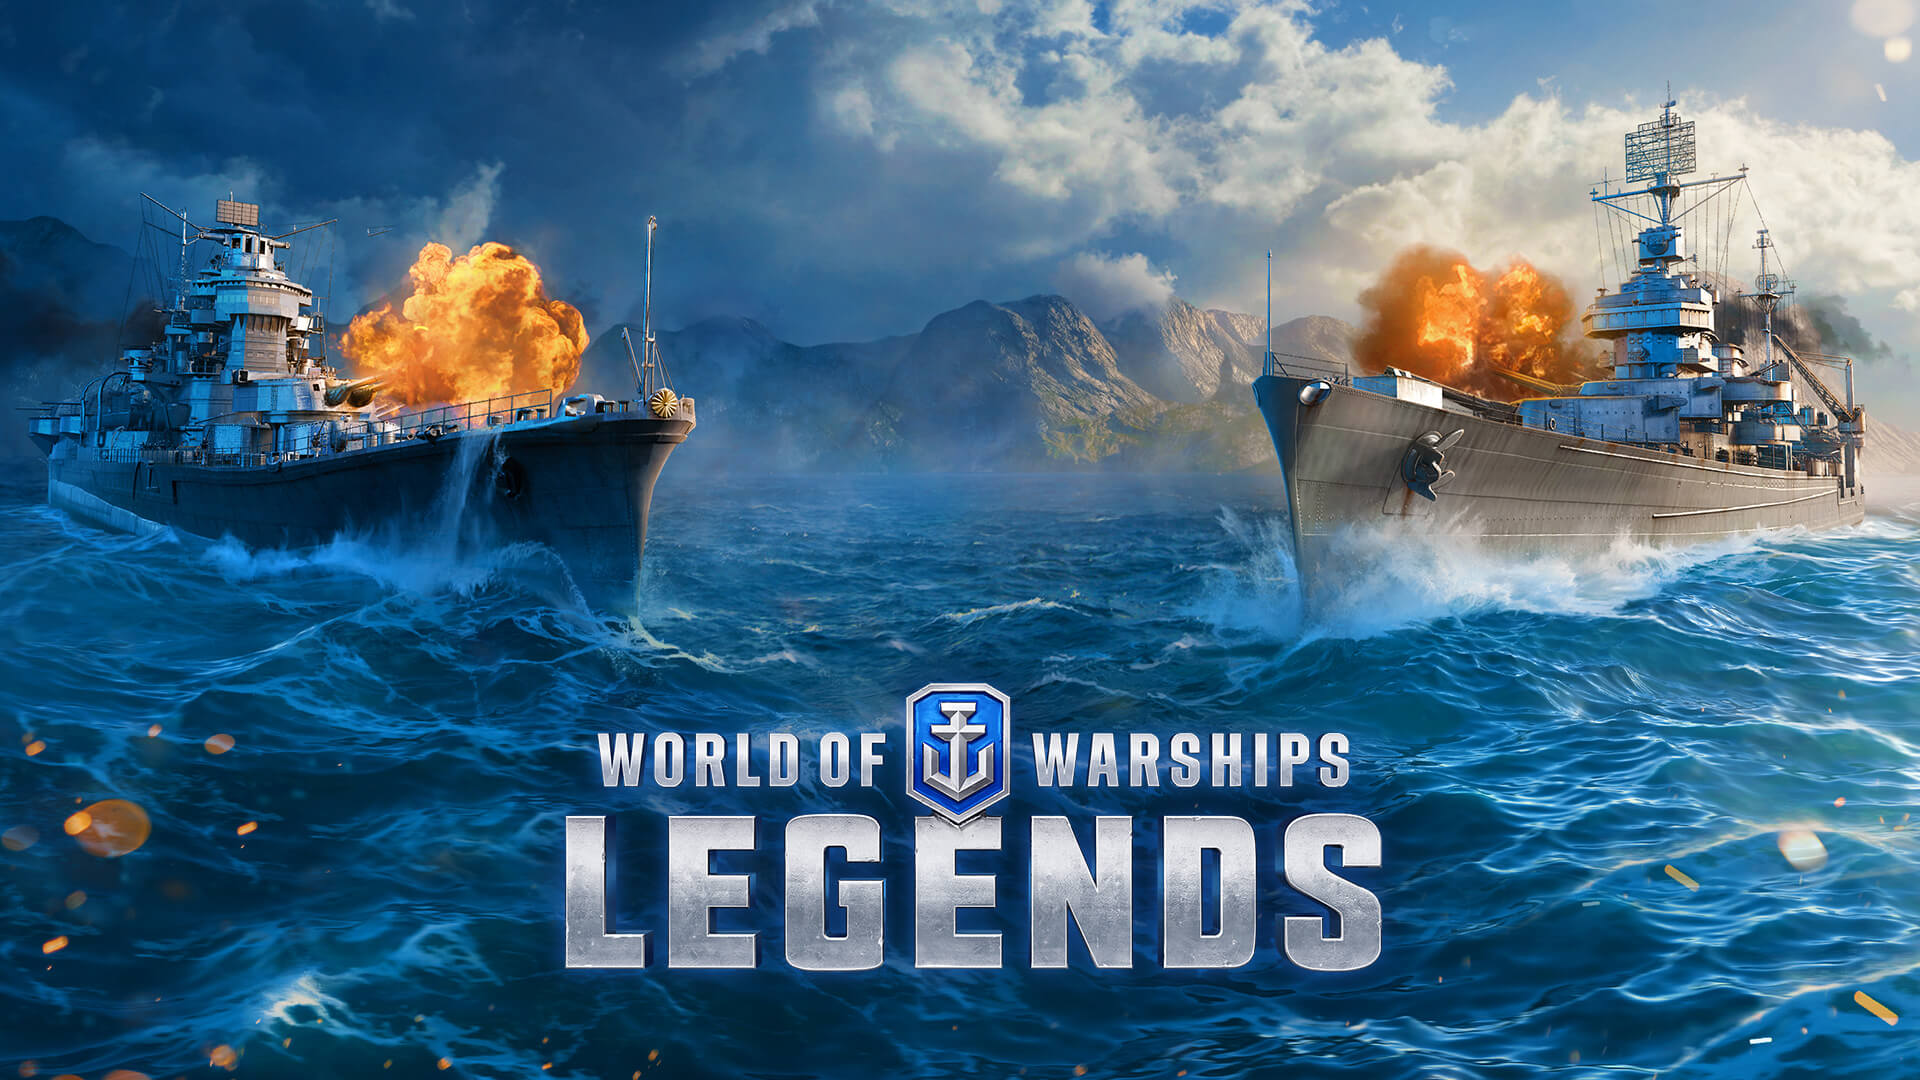 world-of-warships-legends.jpg